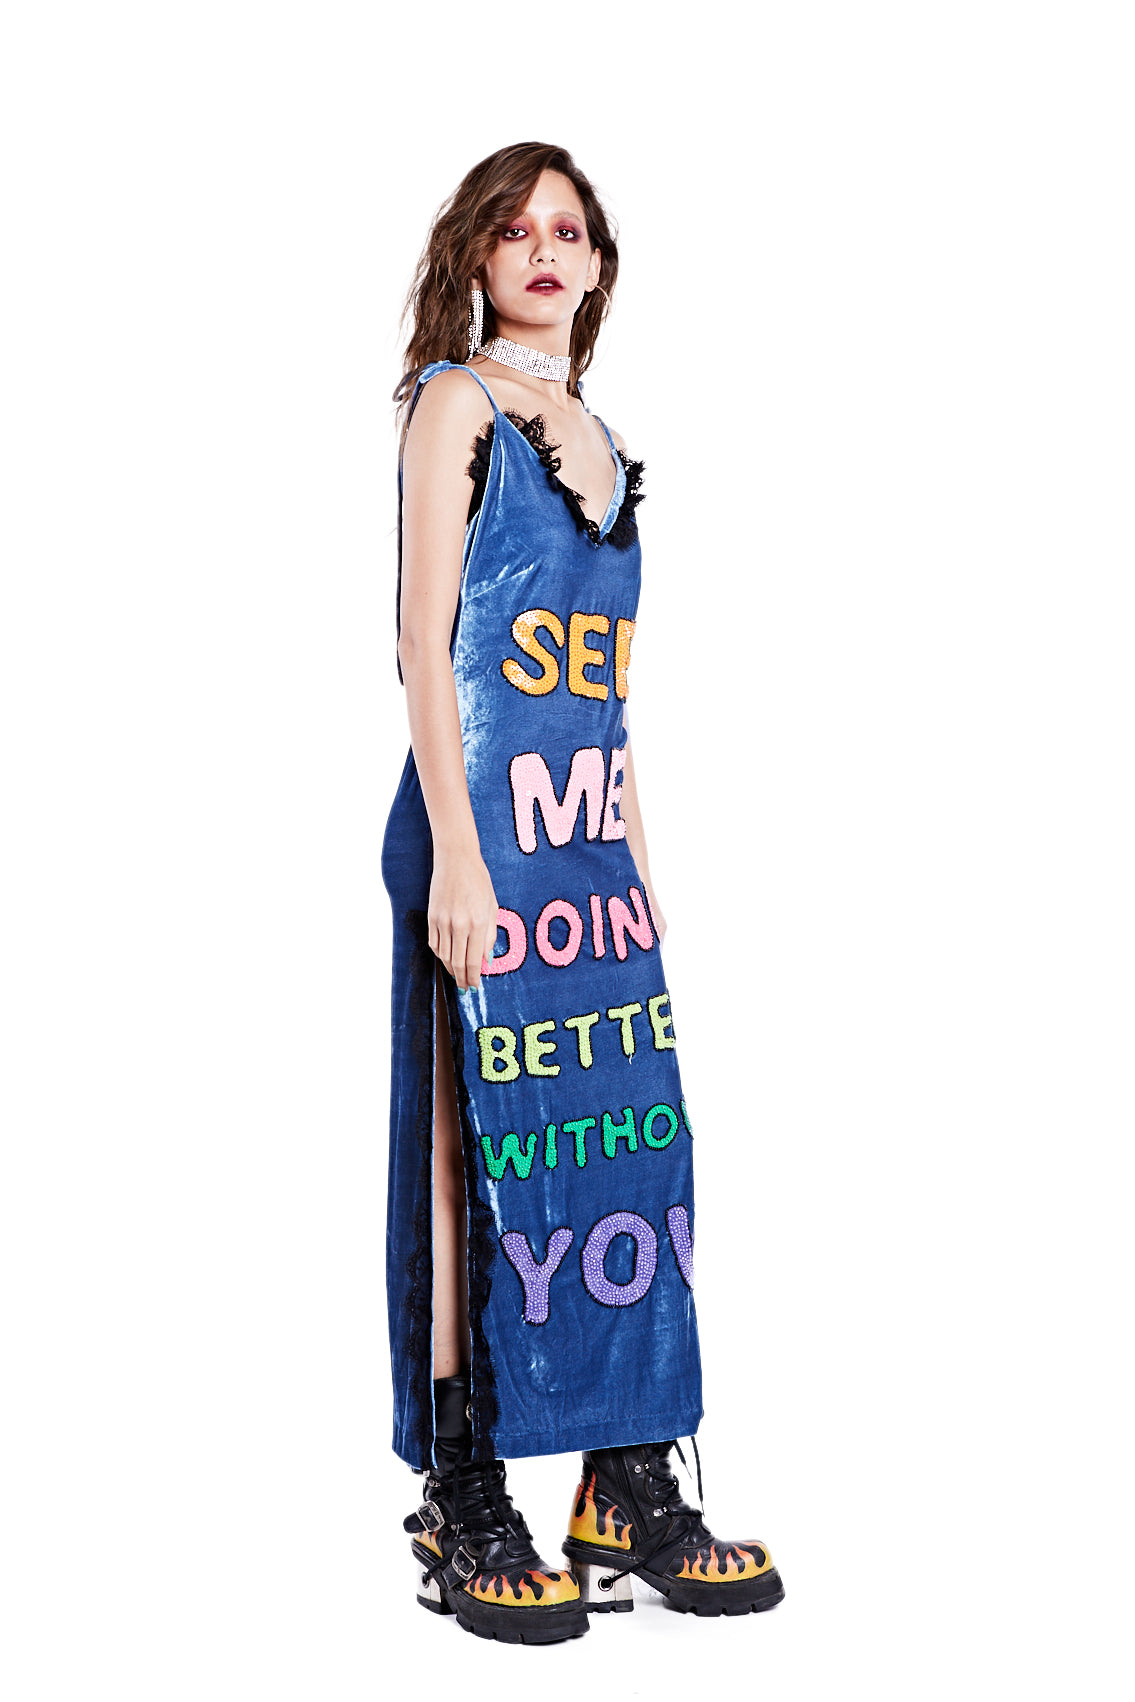 Better Without You Dress - Blue - I LOVE DIY by Panida